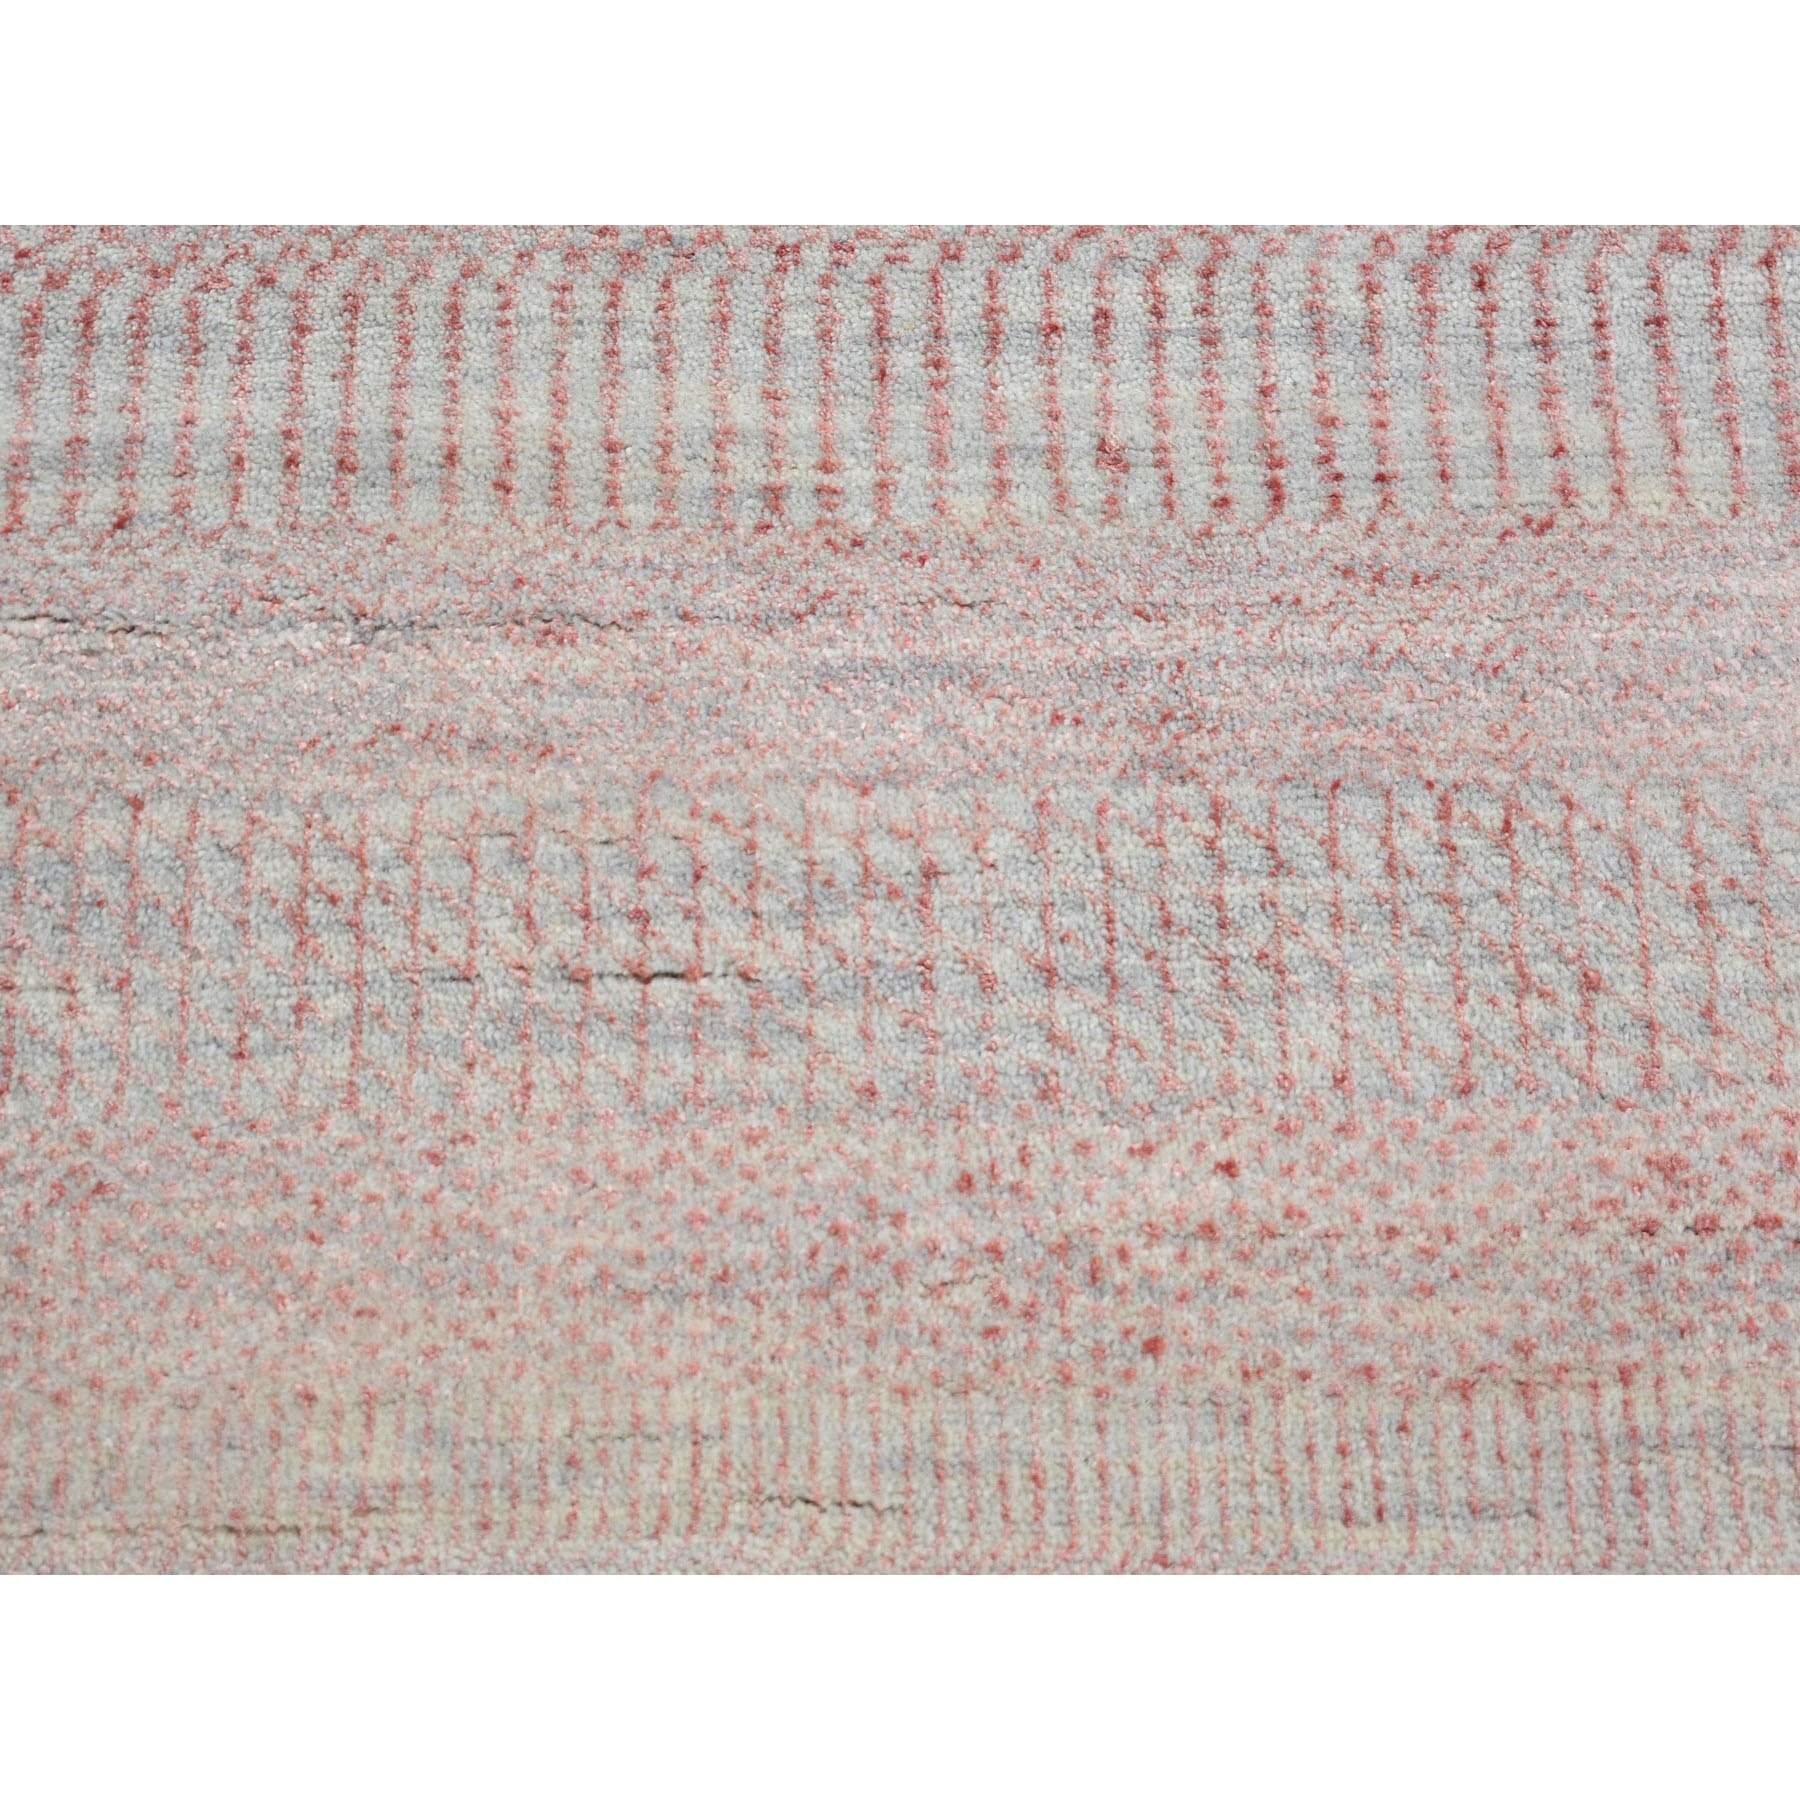 8-1 x10-1  Pink Grass Design Wool And Silk Hand Knotted Oriental Rug